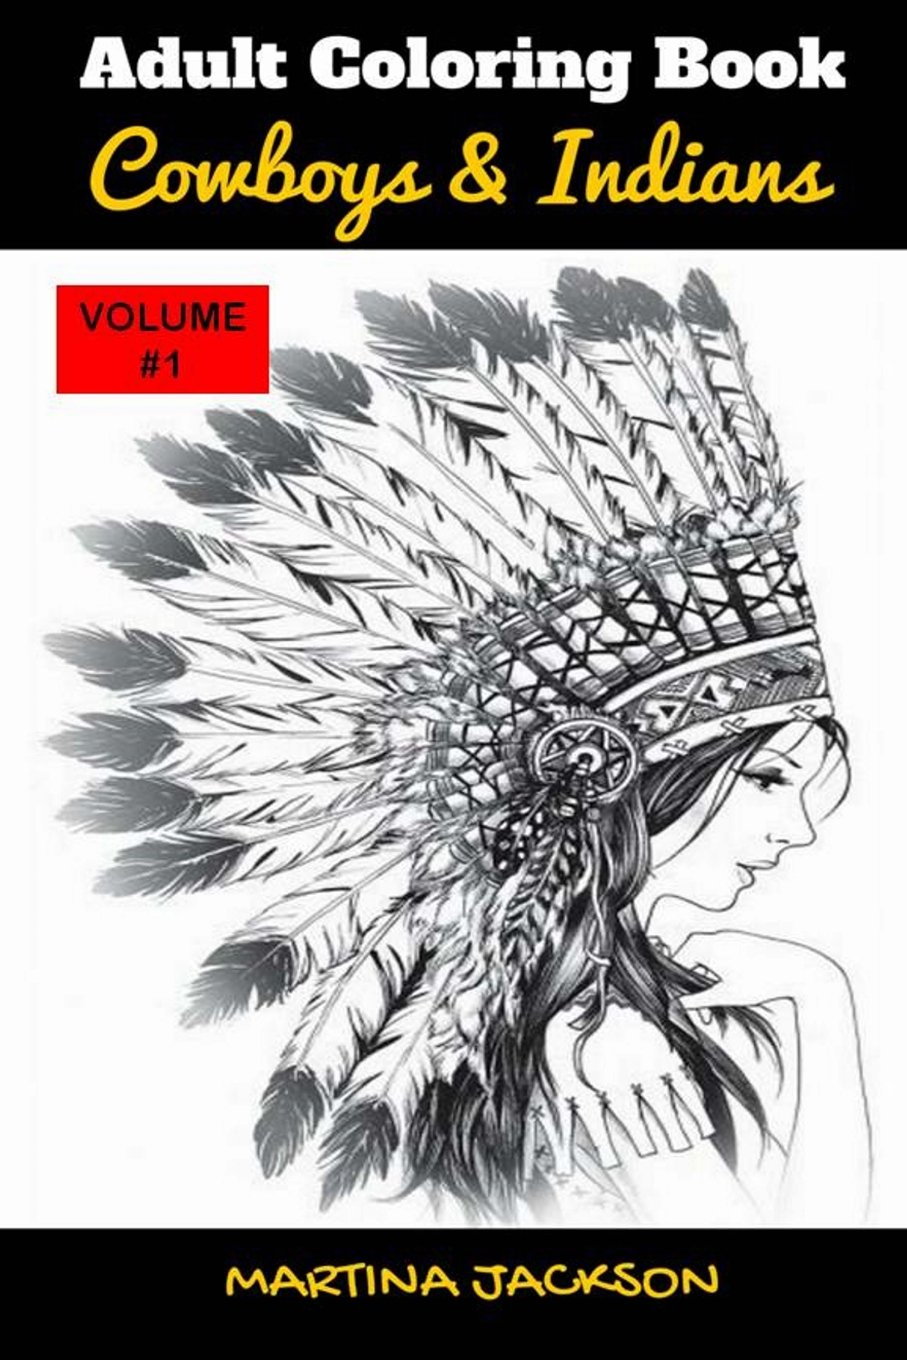 Read Online Adult Coloring Book Cowboys & Indians 6x9: 40 Detailed Coloring Pages Theme Of Cowboy & Indians (MCJ Adult Coloring Books Collection) ebook